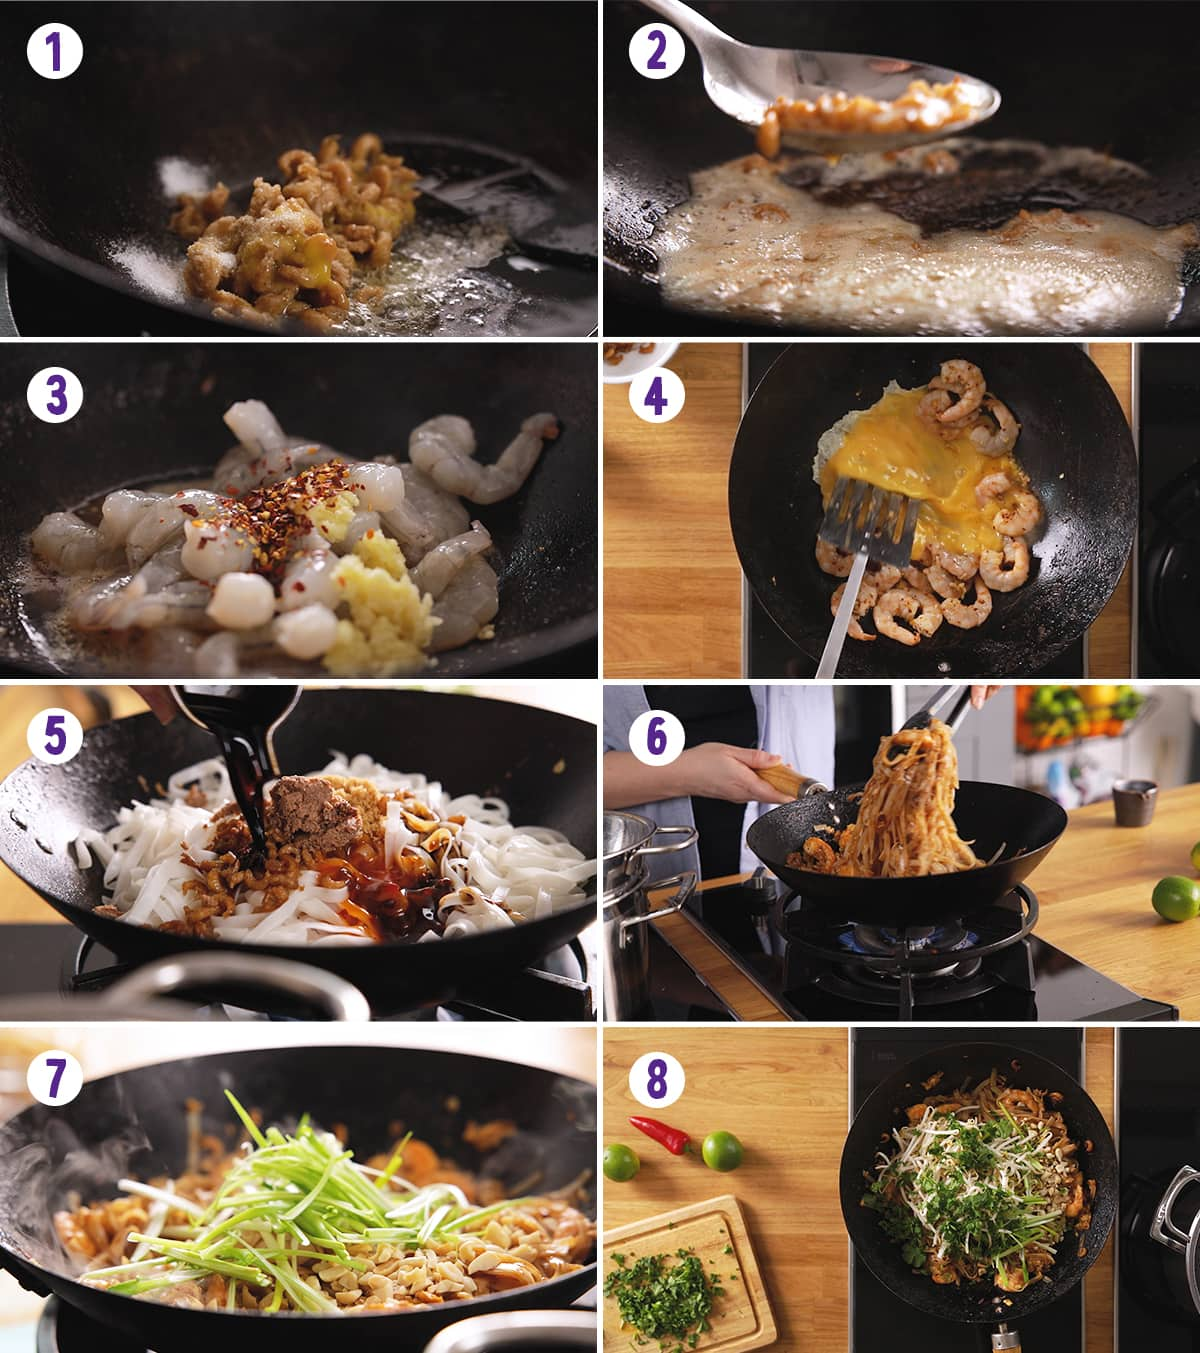 8 image collage showing how to make Pad Thai